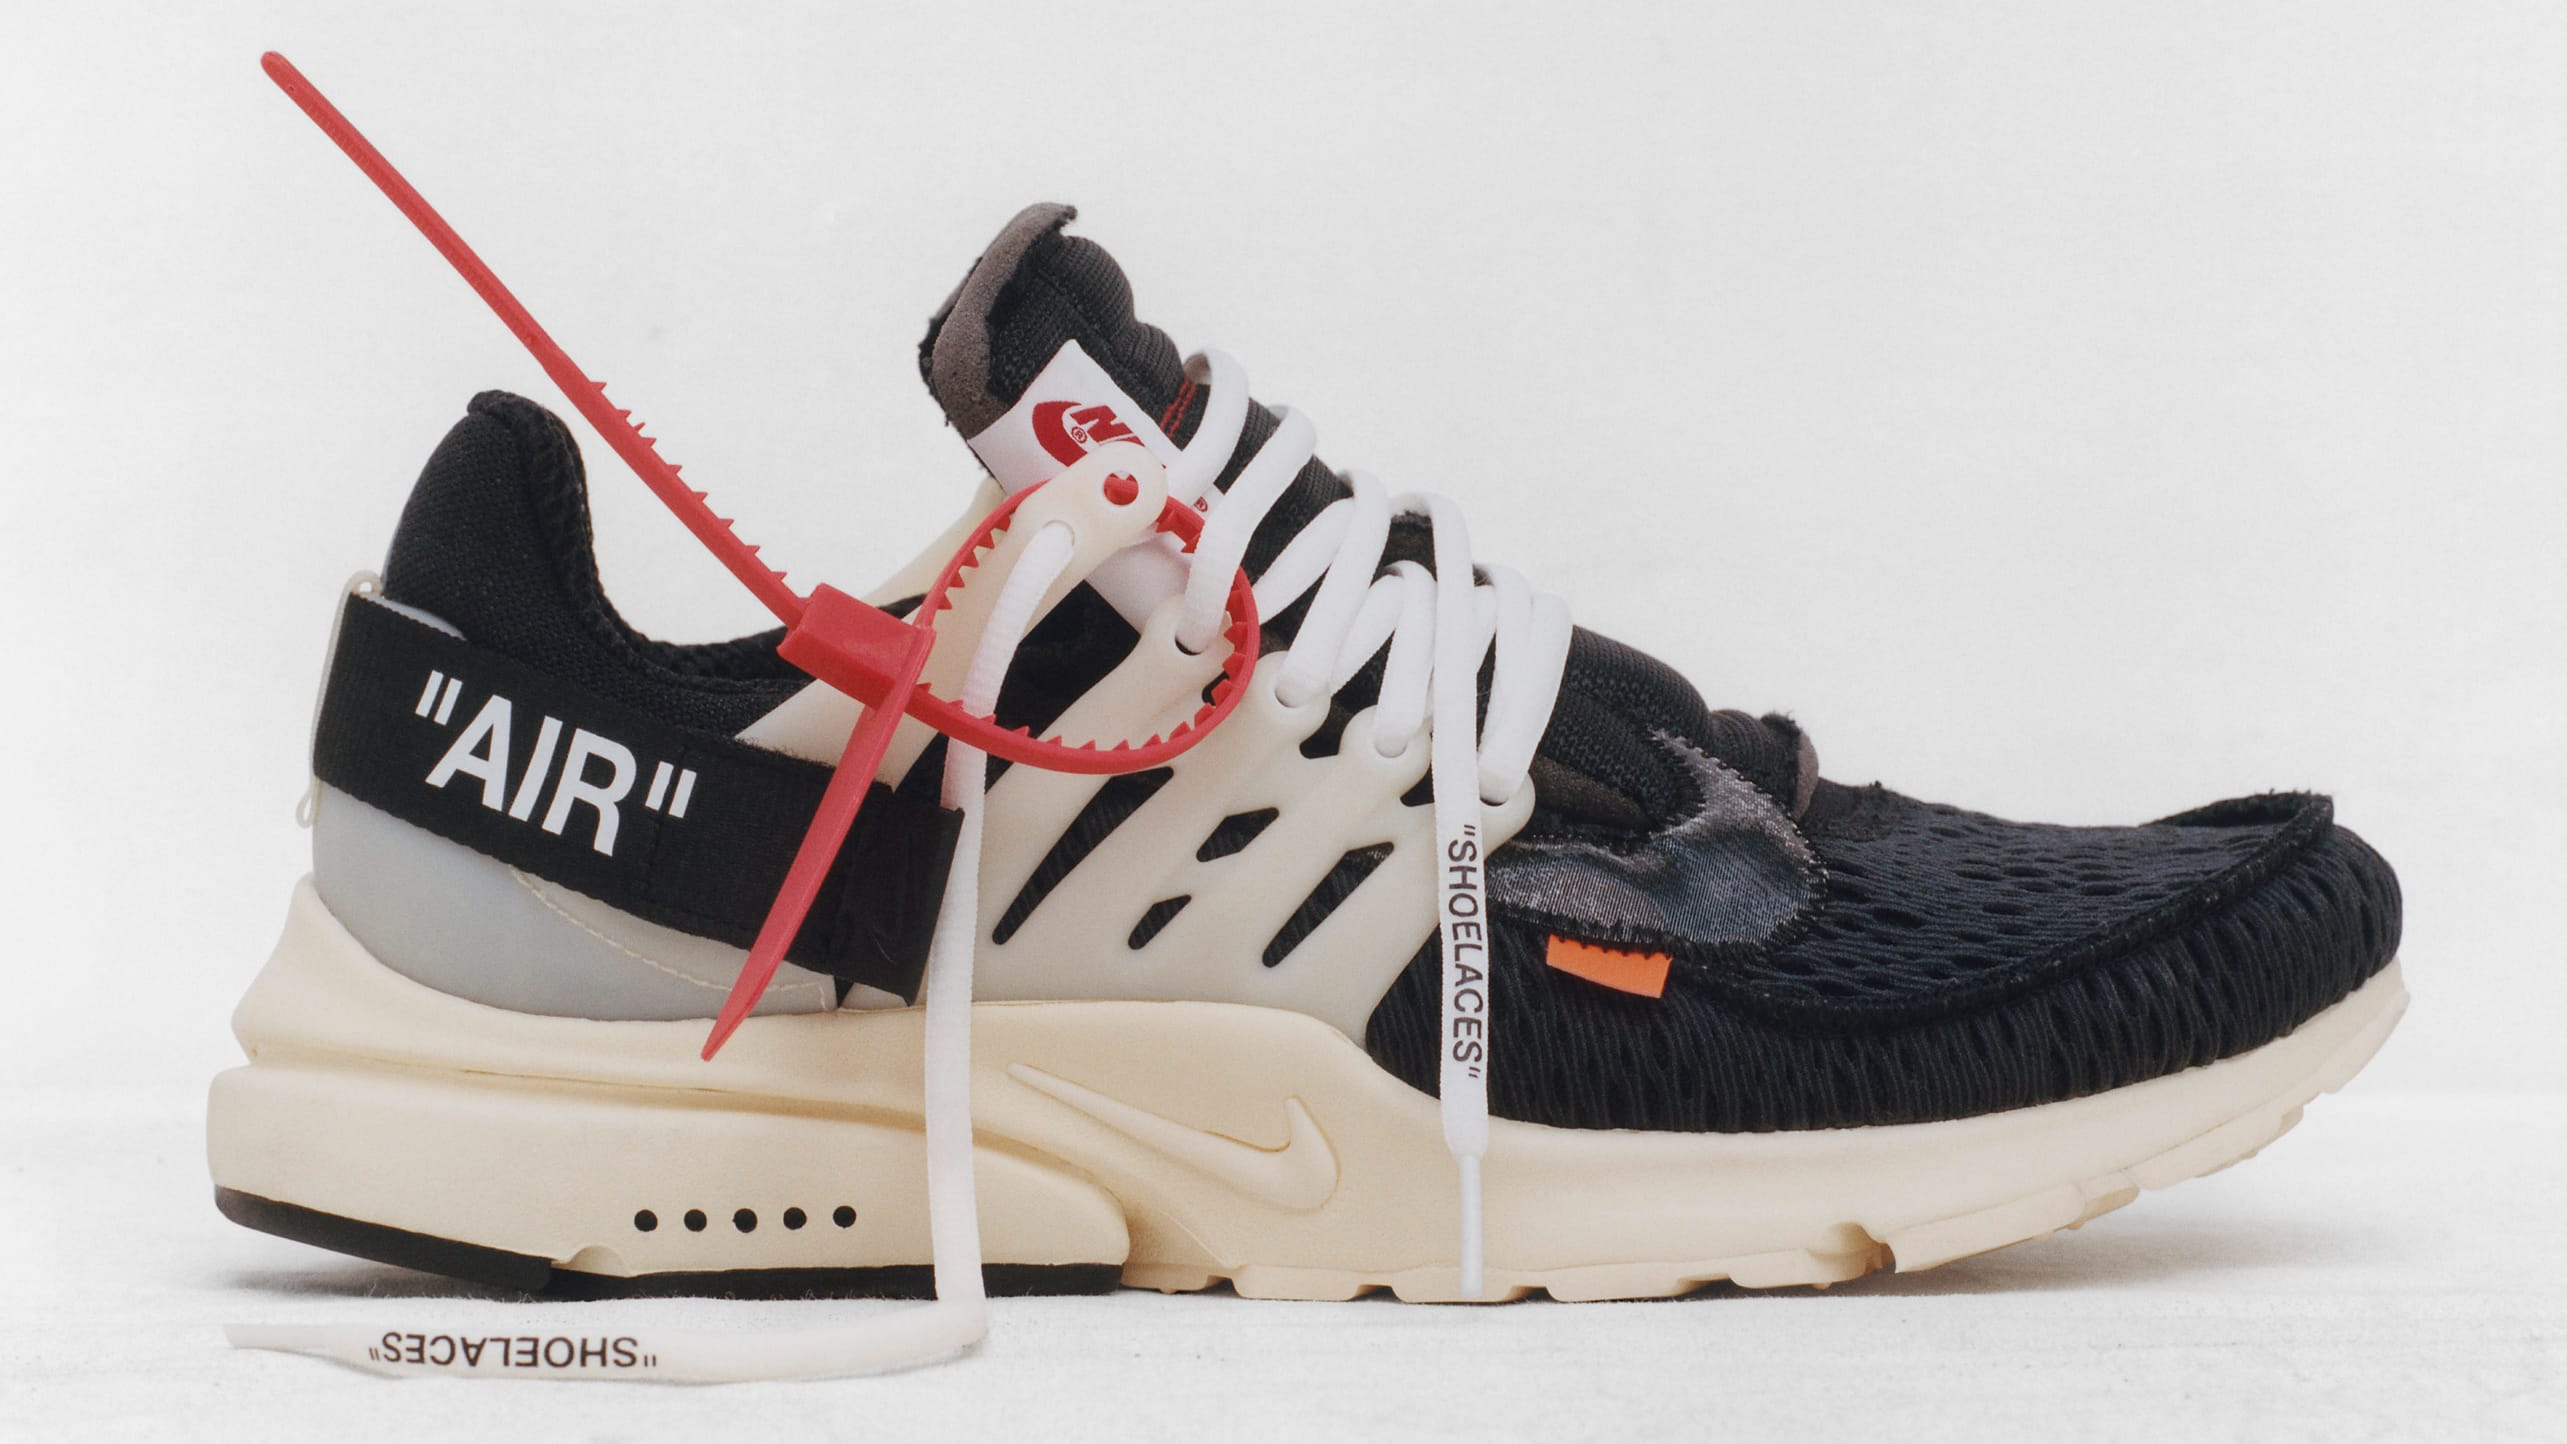 Nike Air Presto Off White x Virgil Abloh red label The Ten